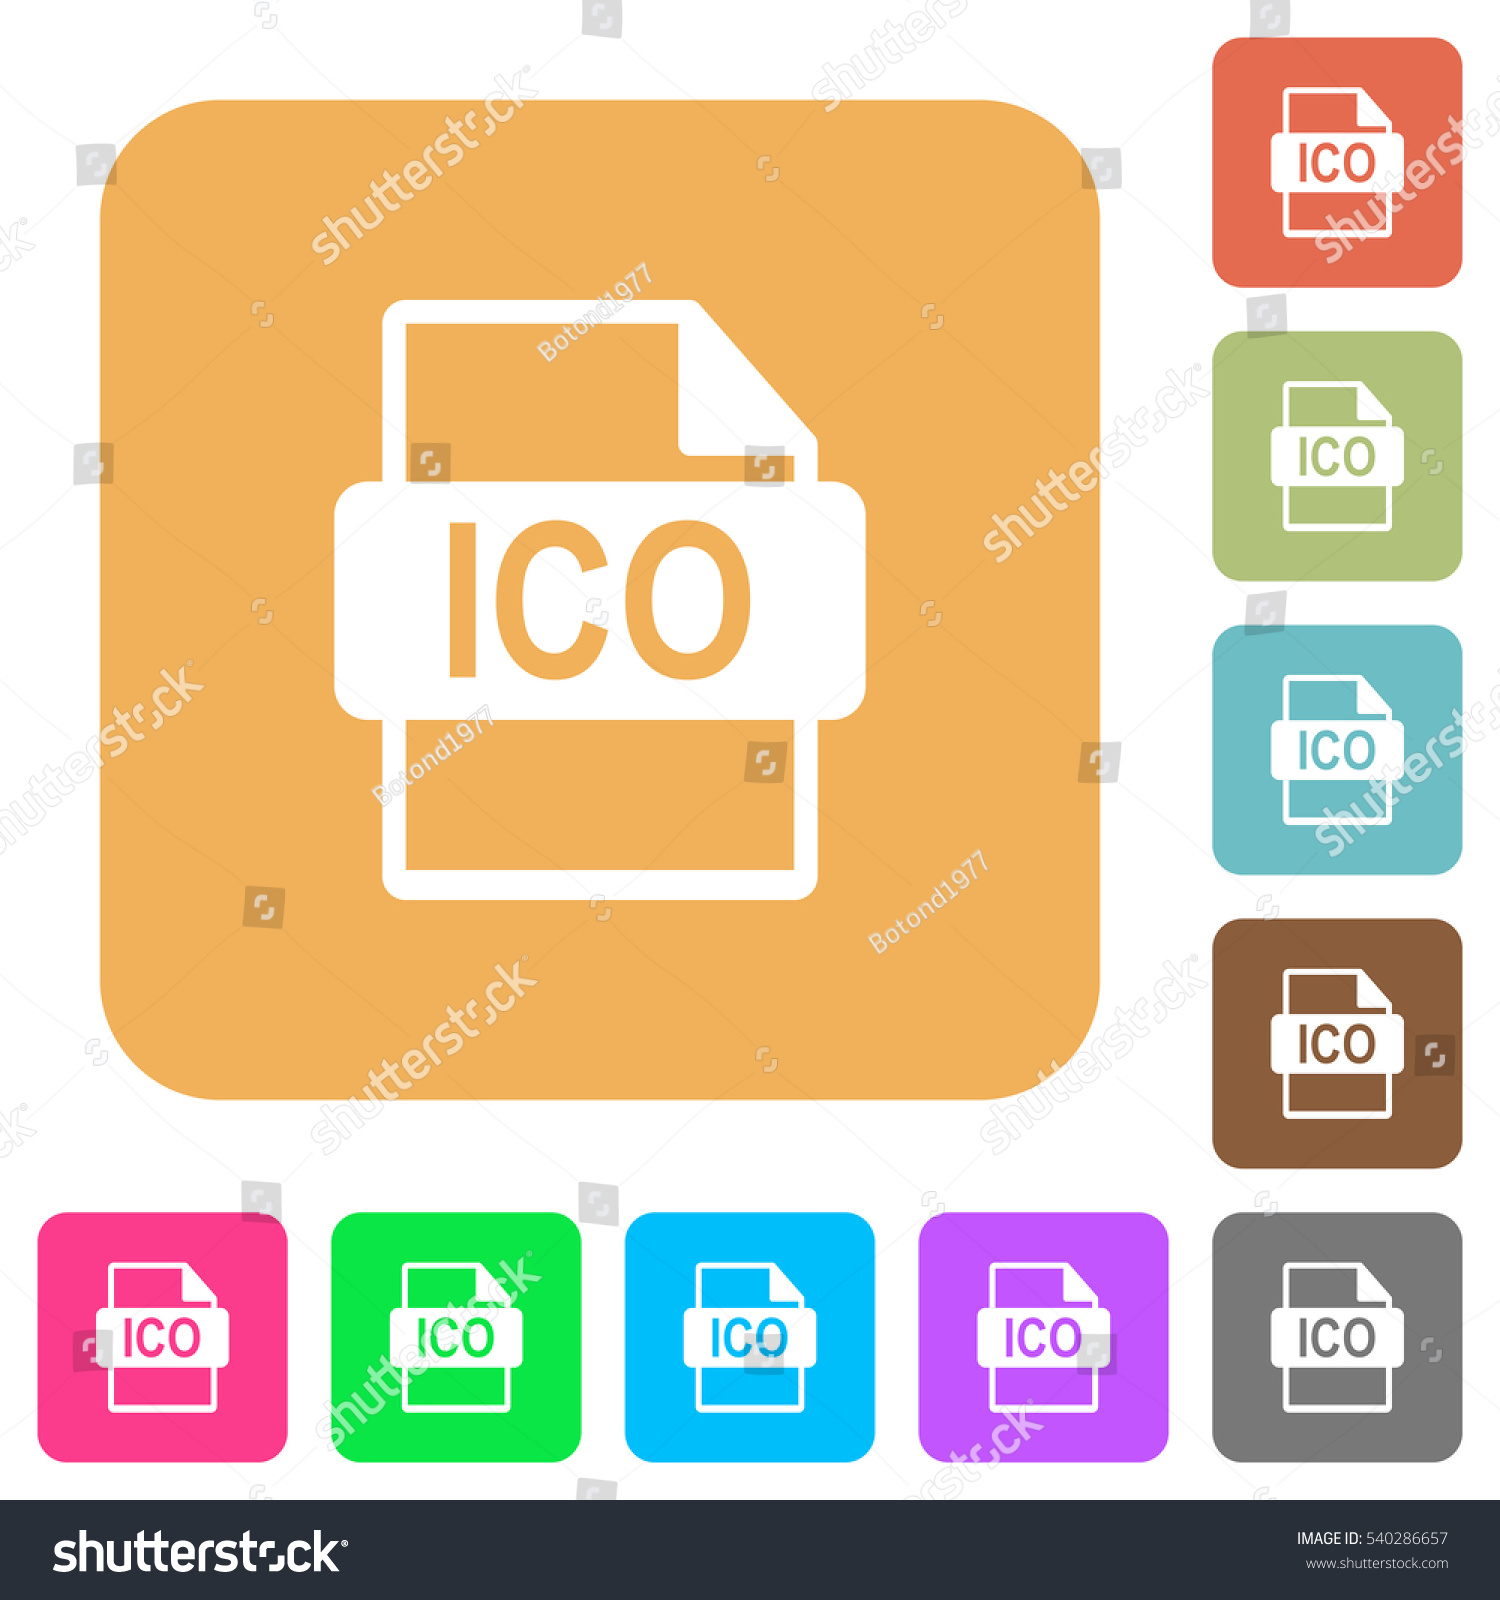 ico file format icons on rounded stock vector 540286657 shutterstock. Black Bedroom Furniture Sets. Home Design Ideas